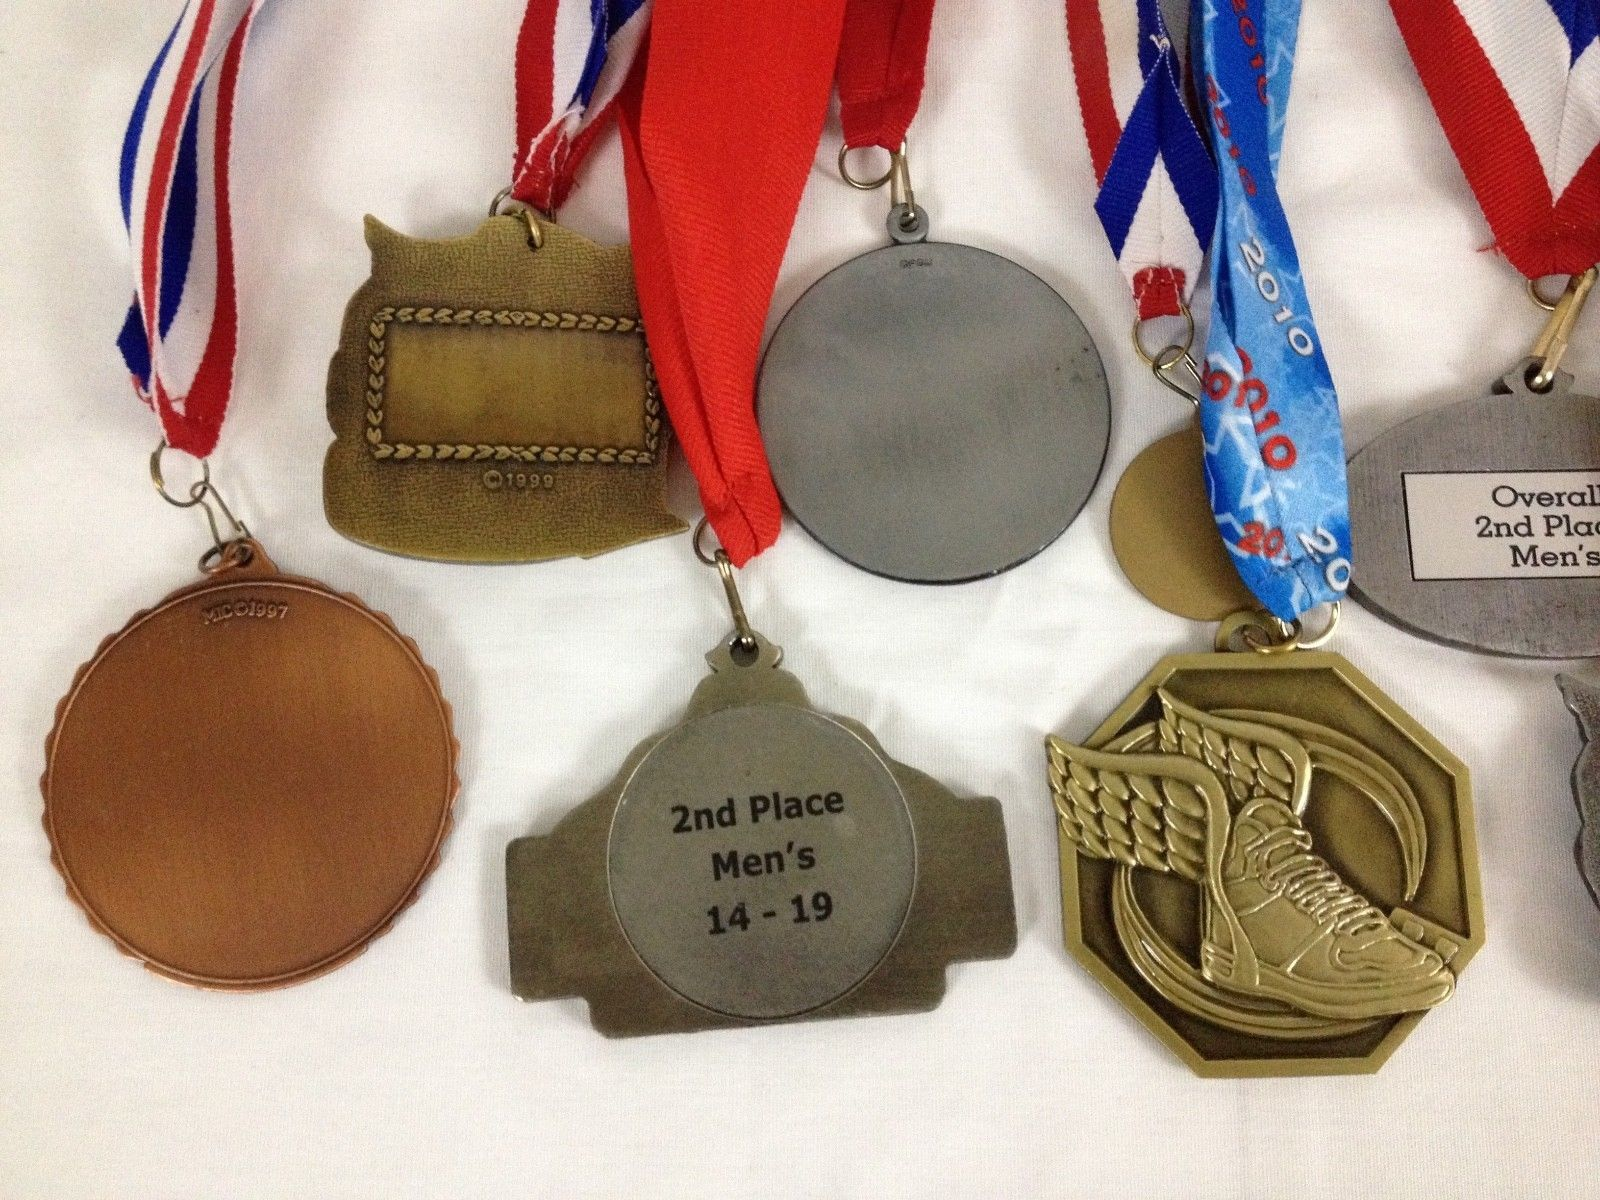 Lot of 14 Running Race Medals Medallions Awards From Various Events image 8